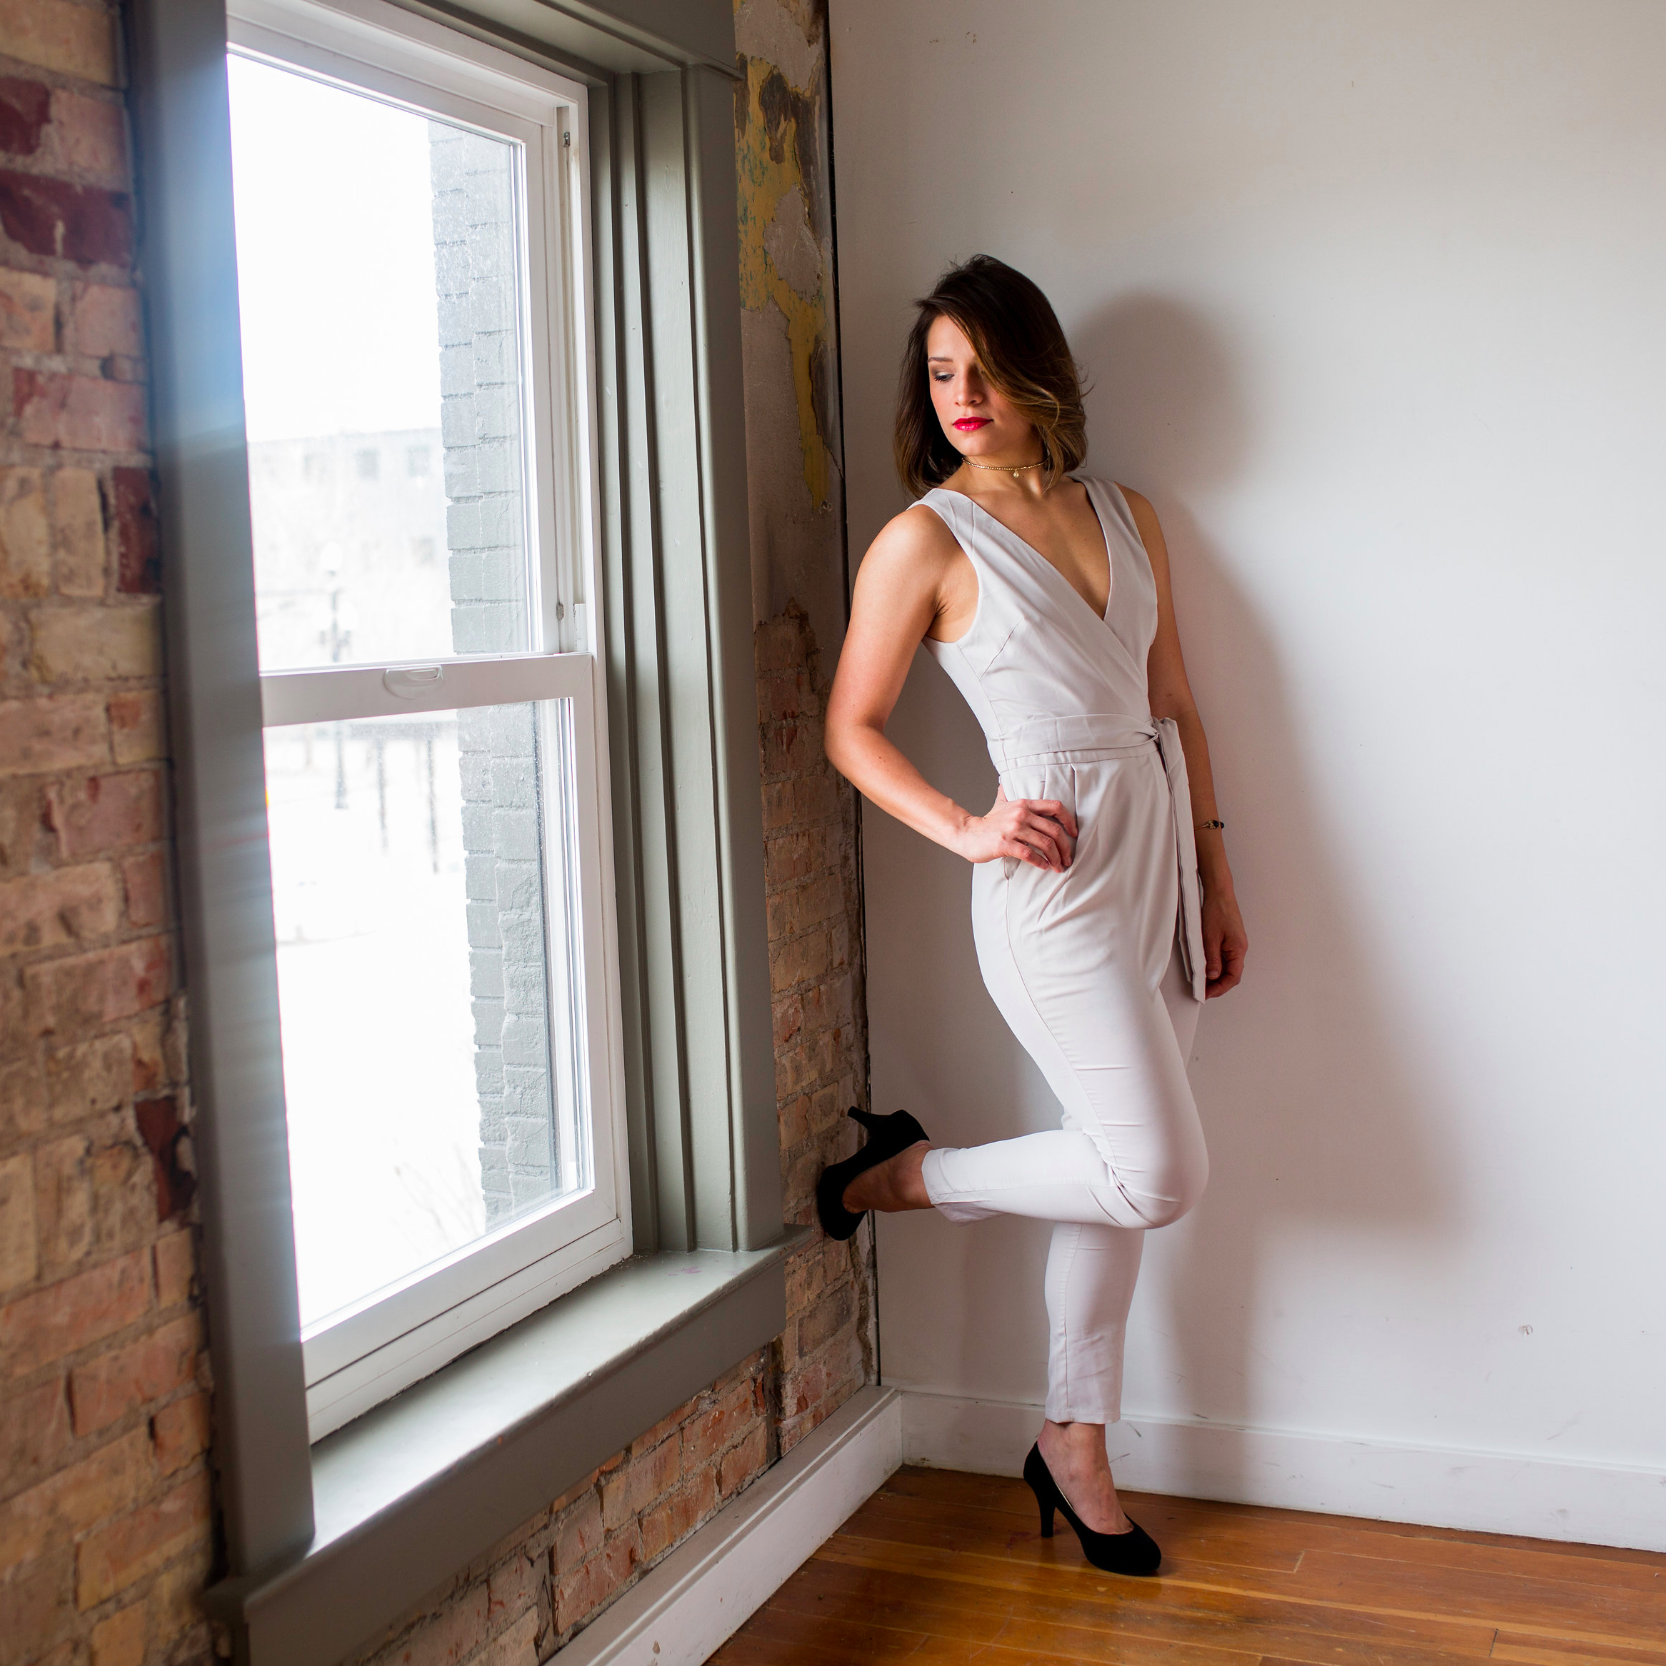 Best Known For: Exclusive and approachable women's fashion. Sizes 0-26. Shop